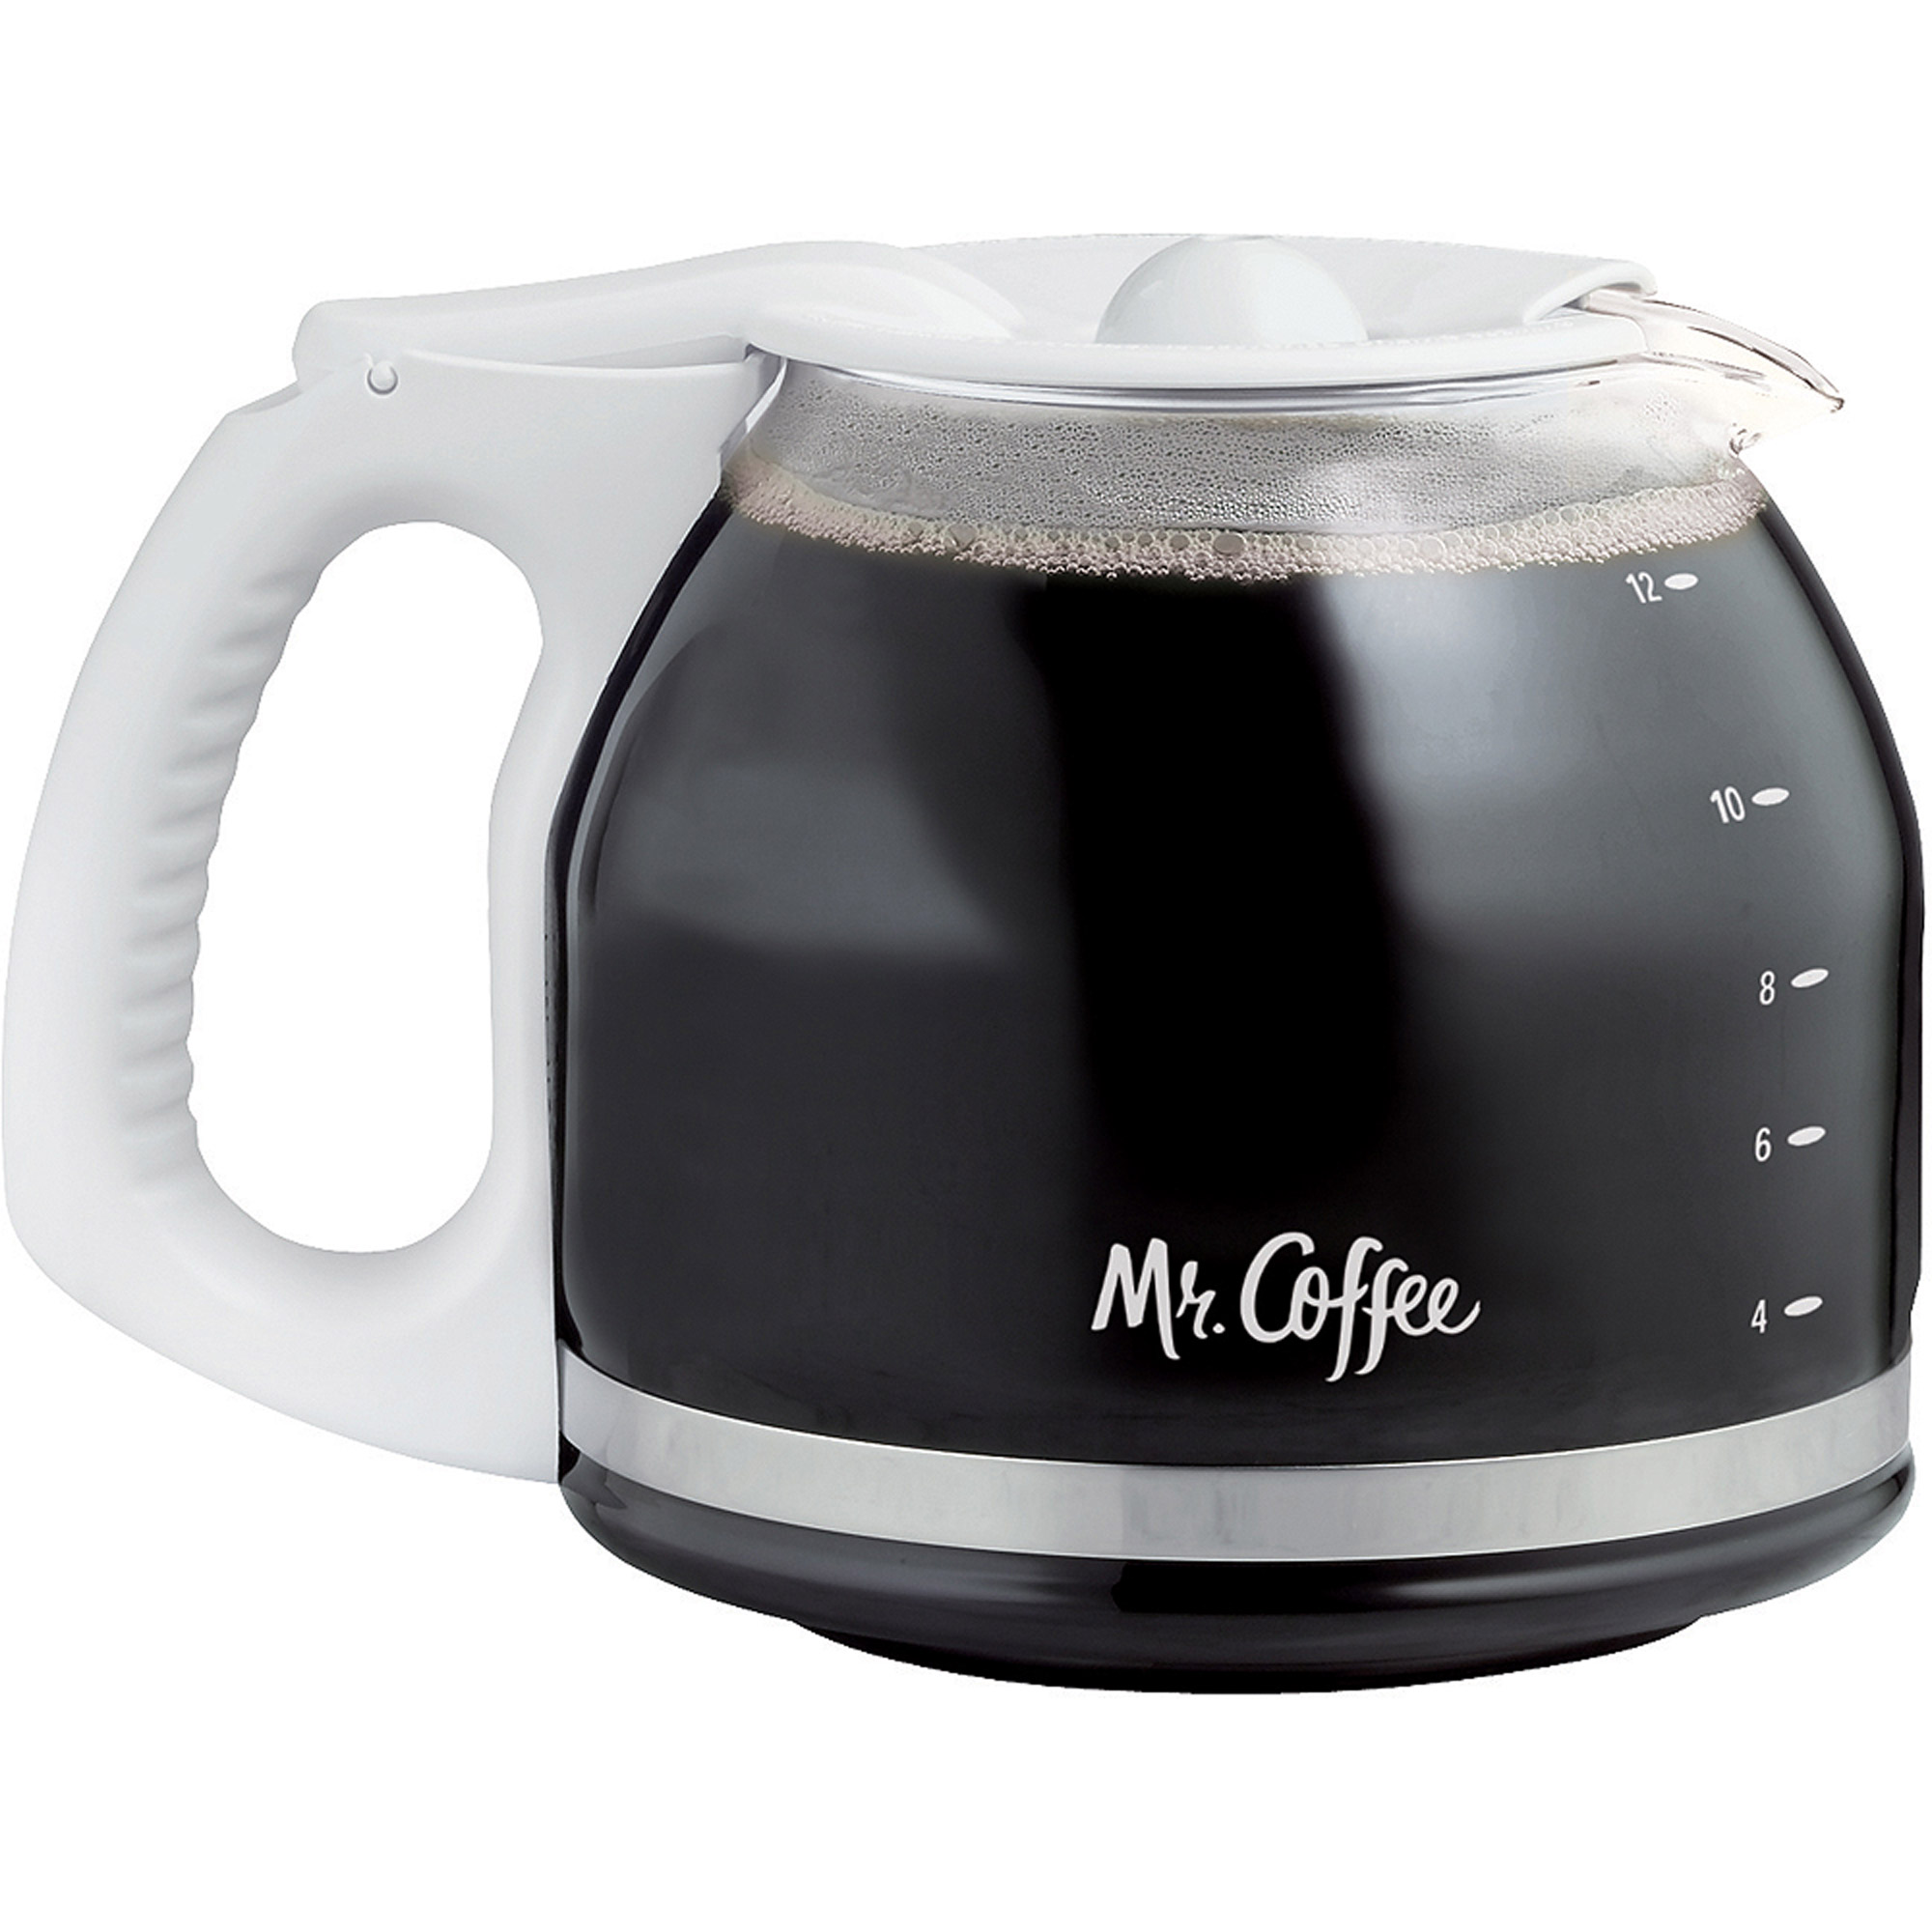 Mr Coffee 12 Cup Replacement Carafe Drinker